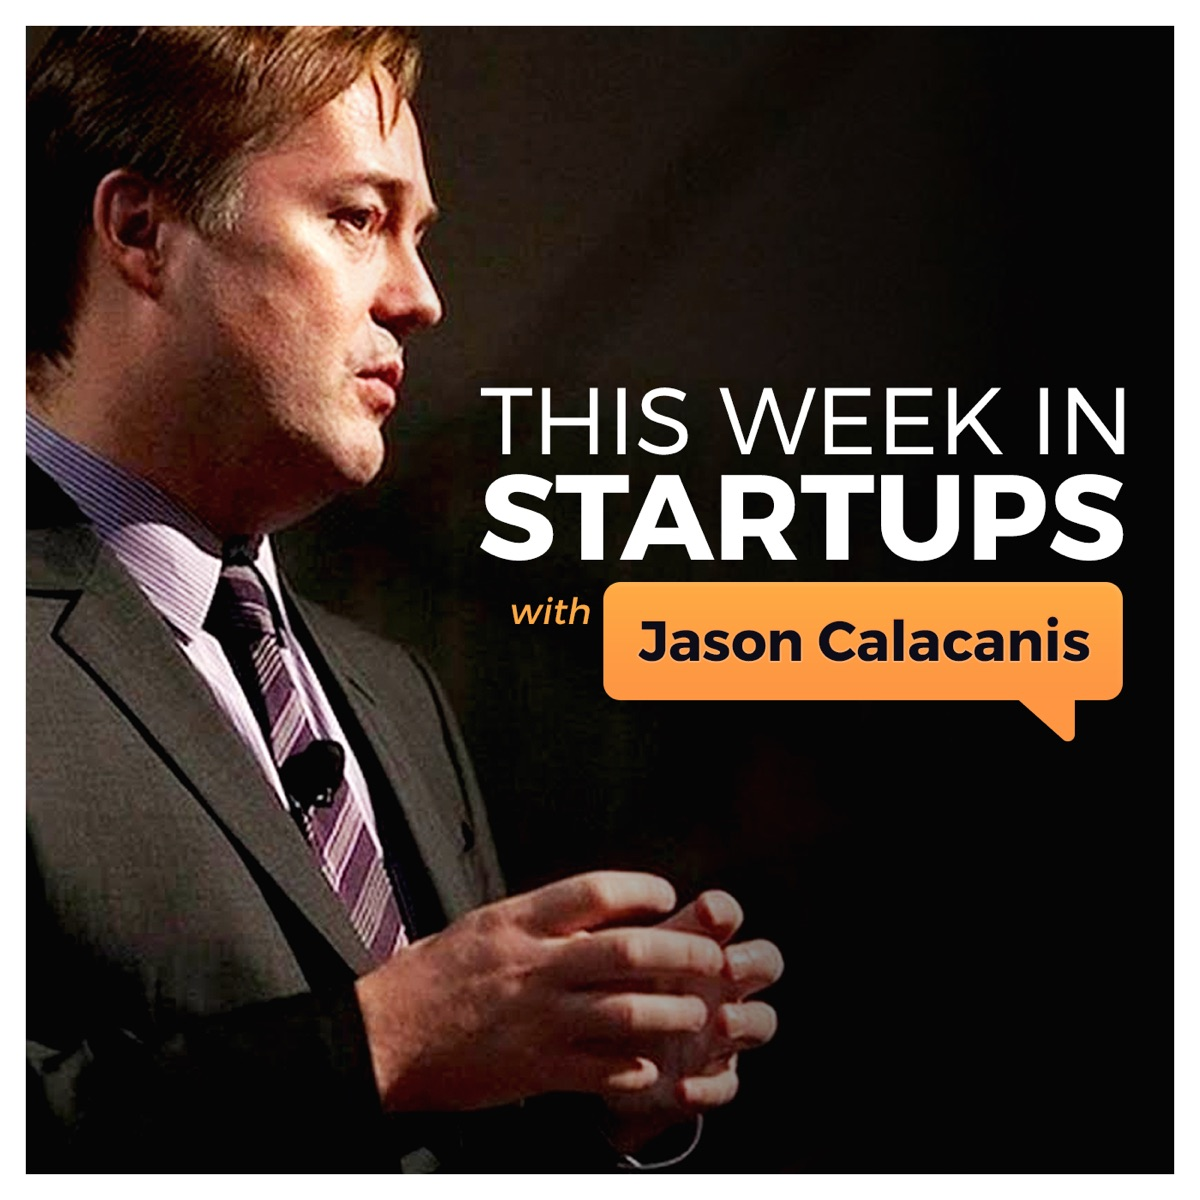 Learn how to be an Angel Investor from Jason Calacanis at Angel.University Online!